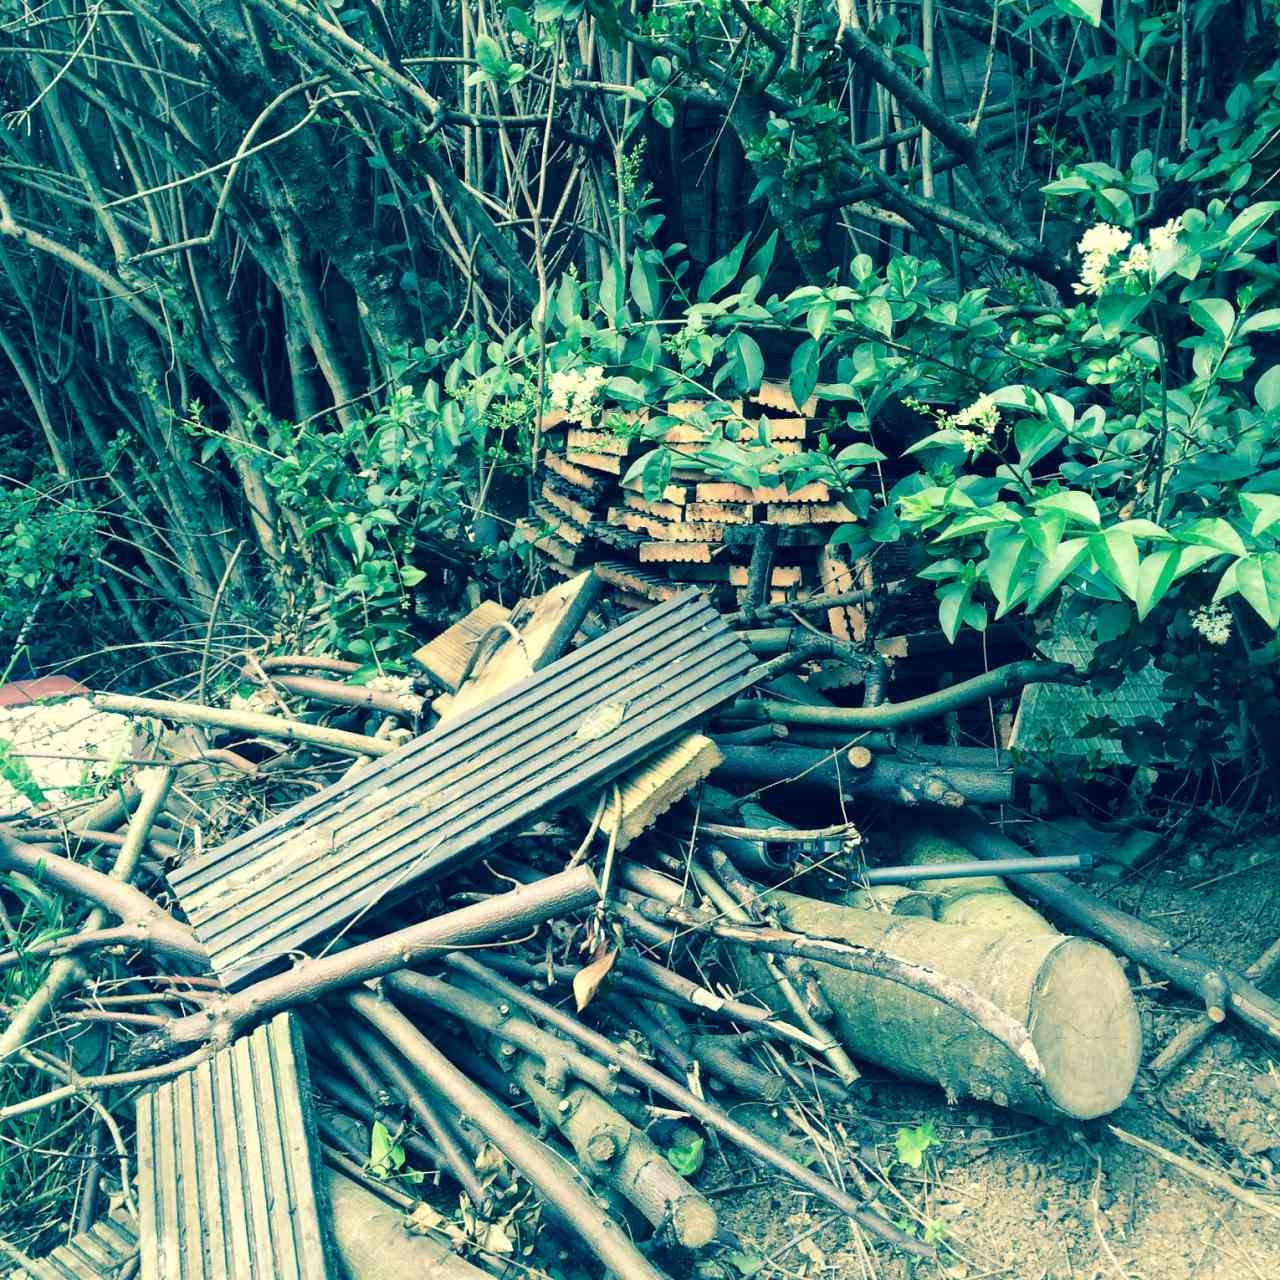 Kensington Olympia woodland clearance services